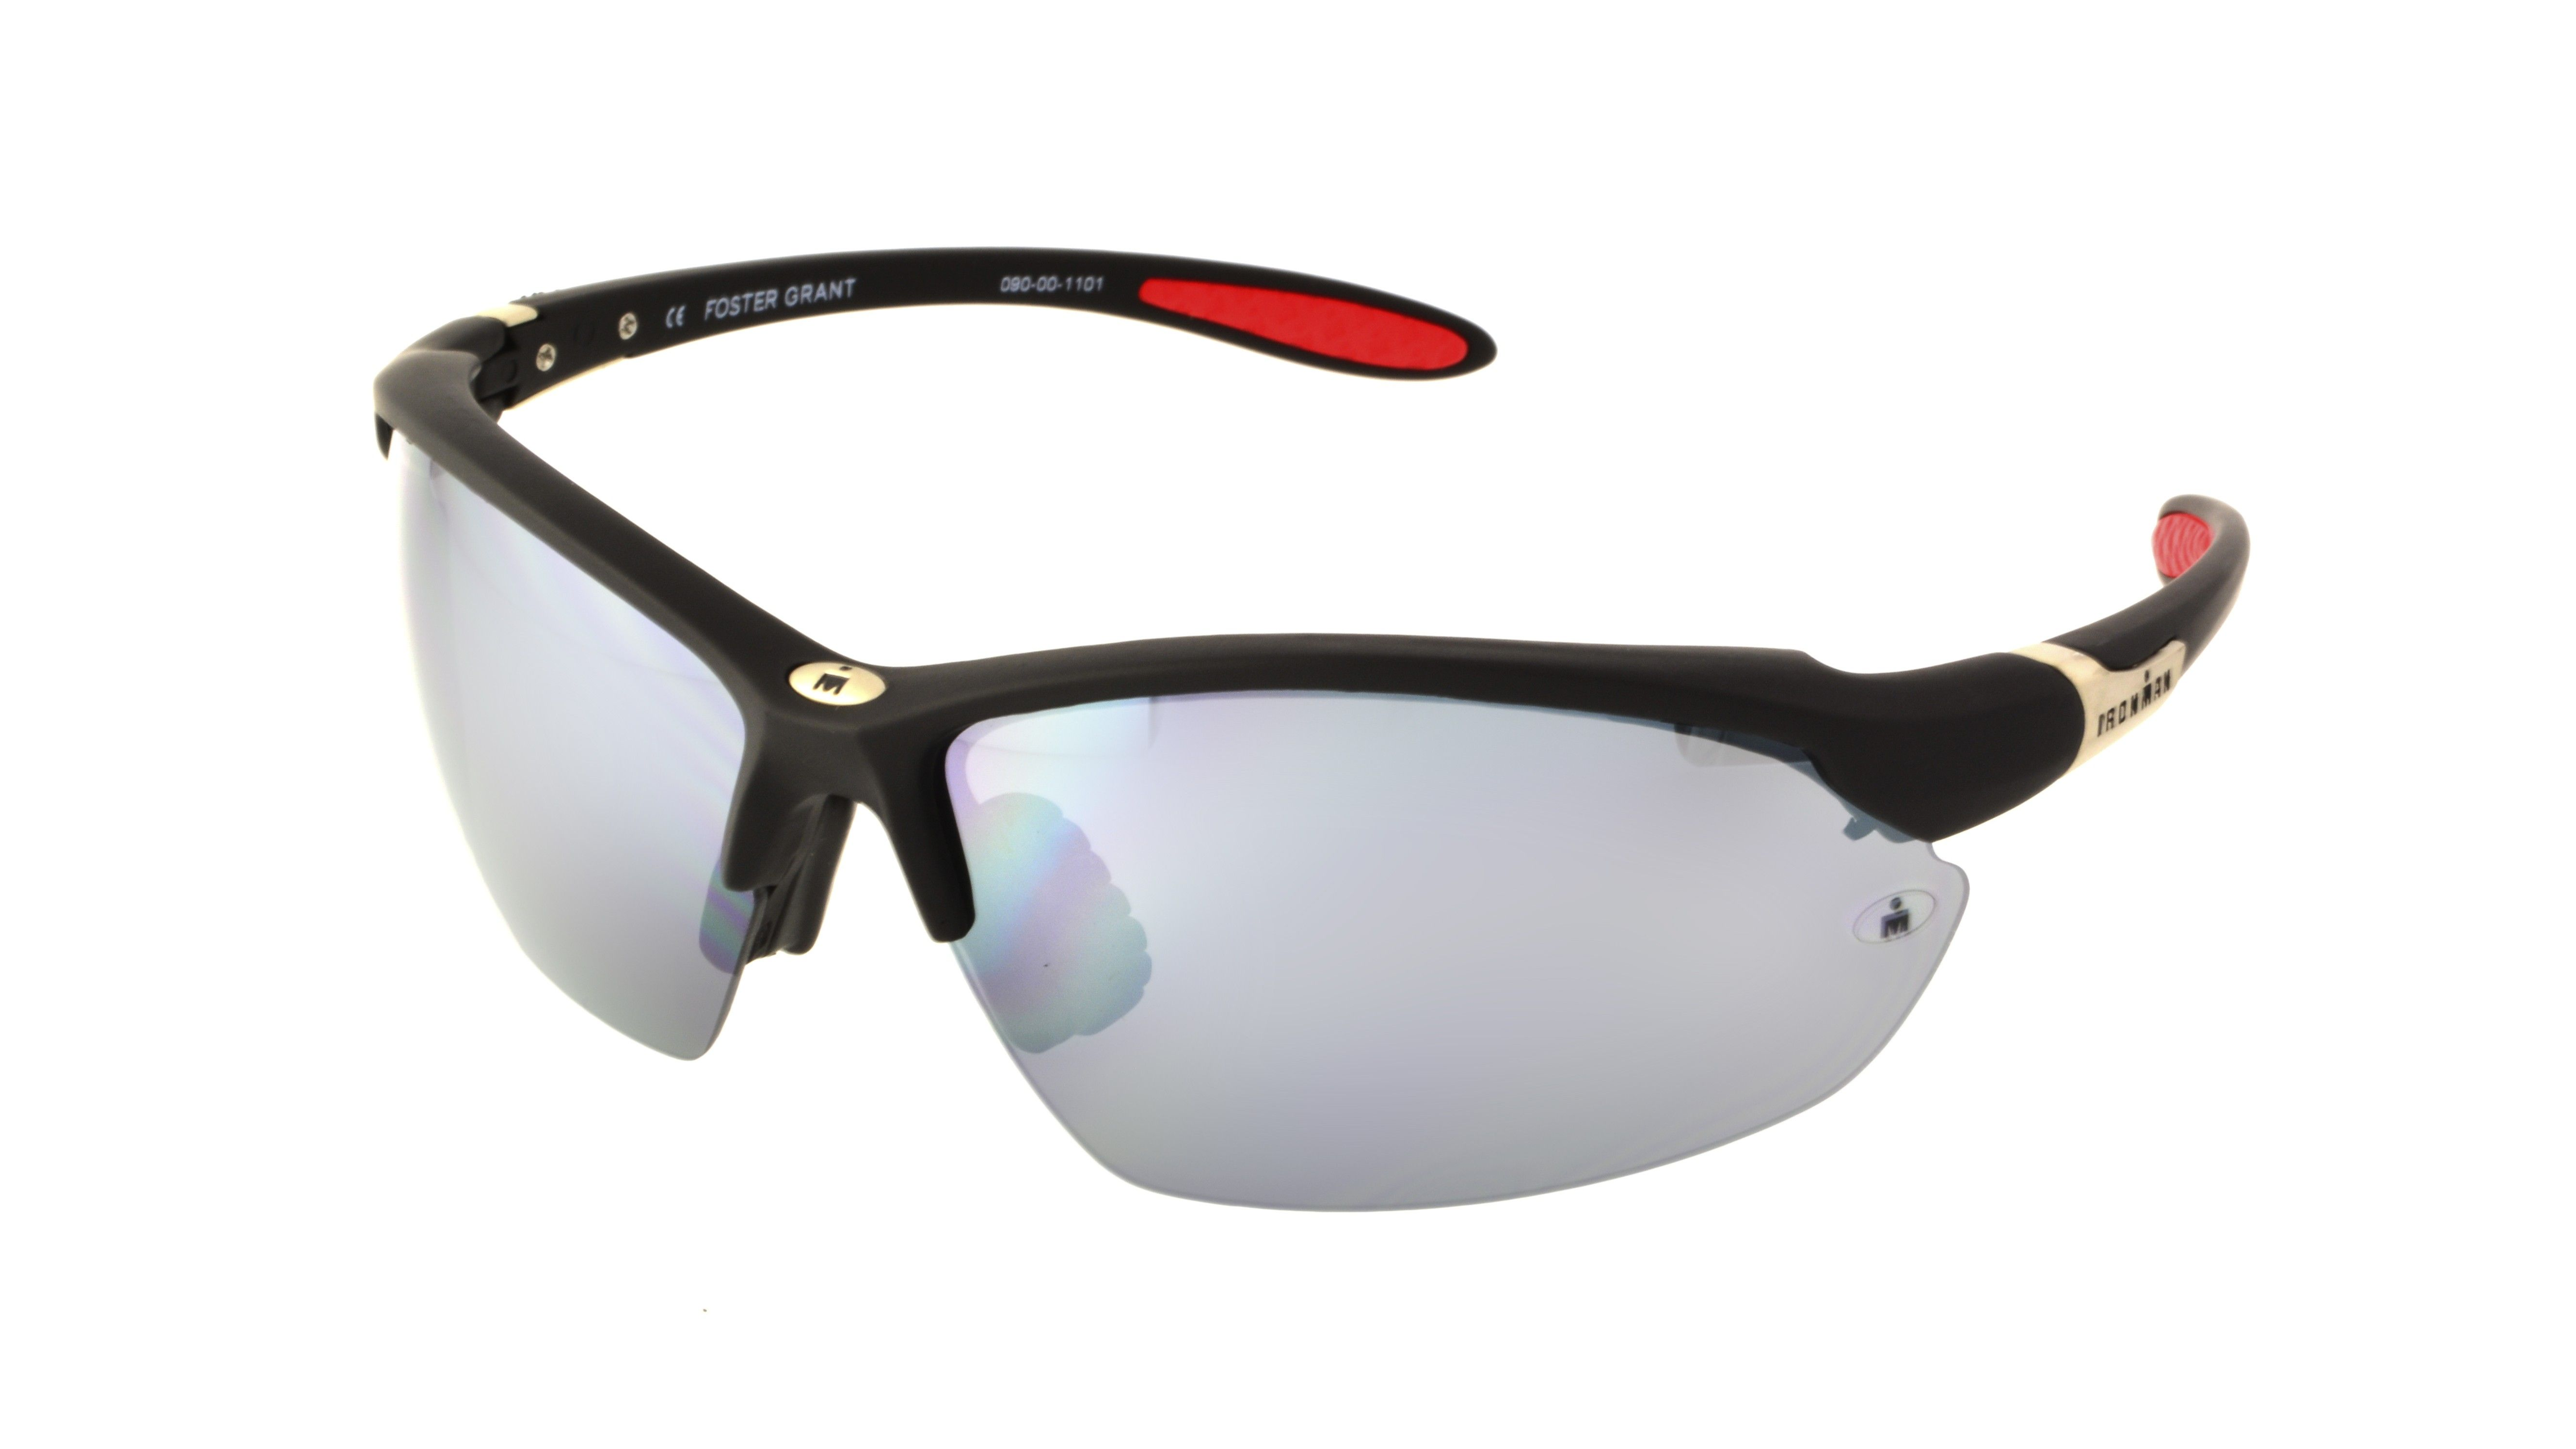 49dbcb95427 Get an extra kick of adrenaline with a pair of Ironman sunglasses by Foster  Grant.